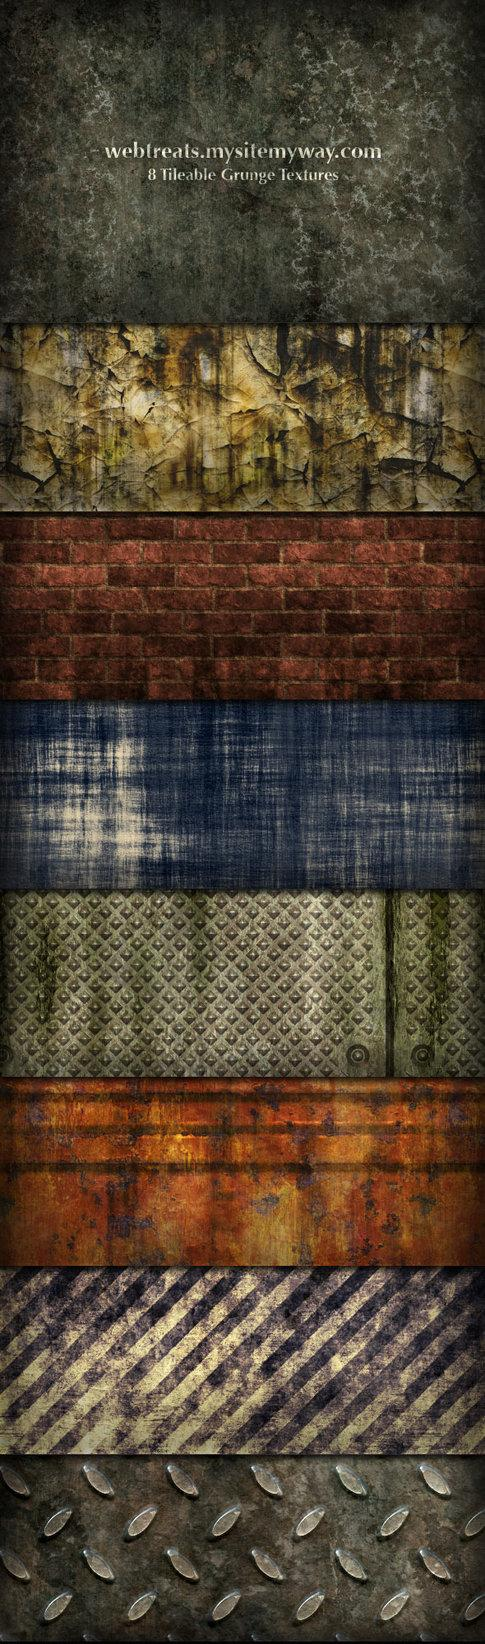 Grunge Textures and Patterns by WebTreatsETC photoshop resource collected by psd-dude.com from deviantart